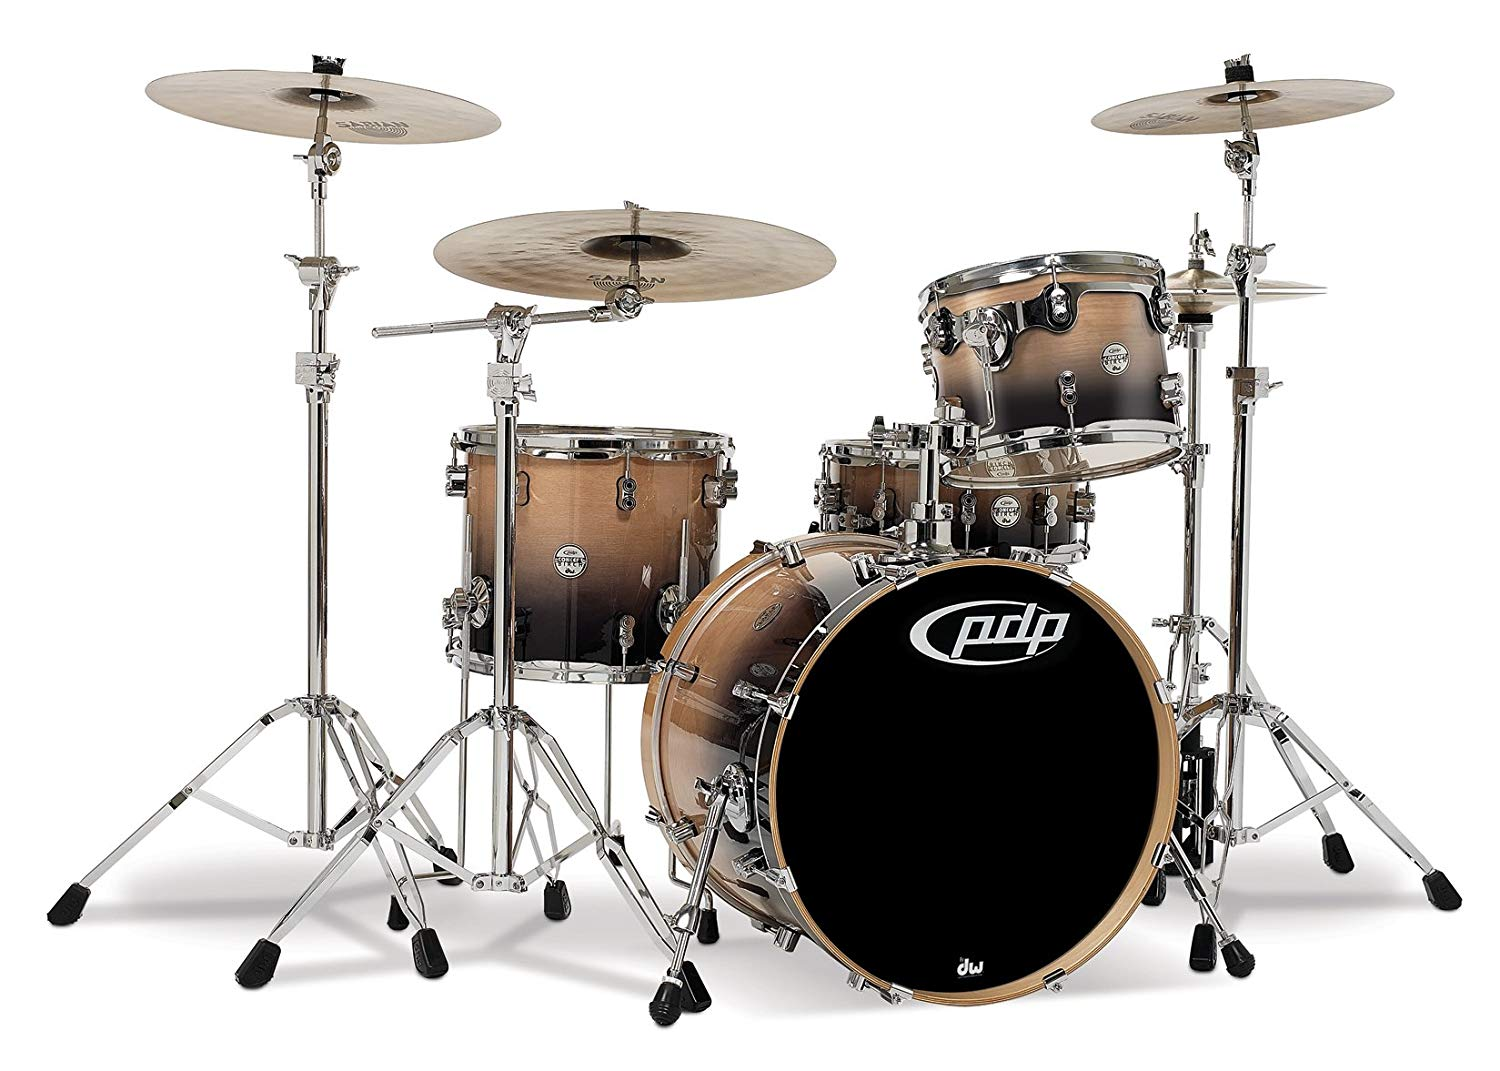 Pacific Drums PDCB2014NC 4-Piece Drumset with Chrome Hardware - Natural to Charcoal Fade